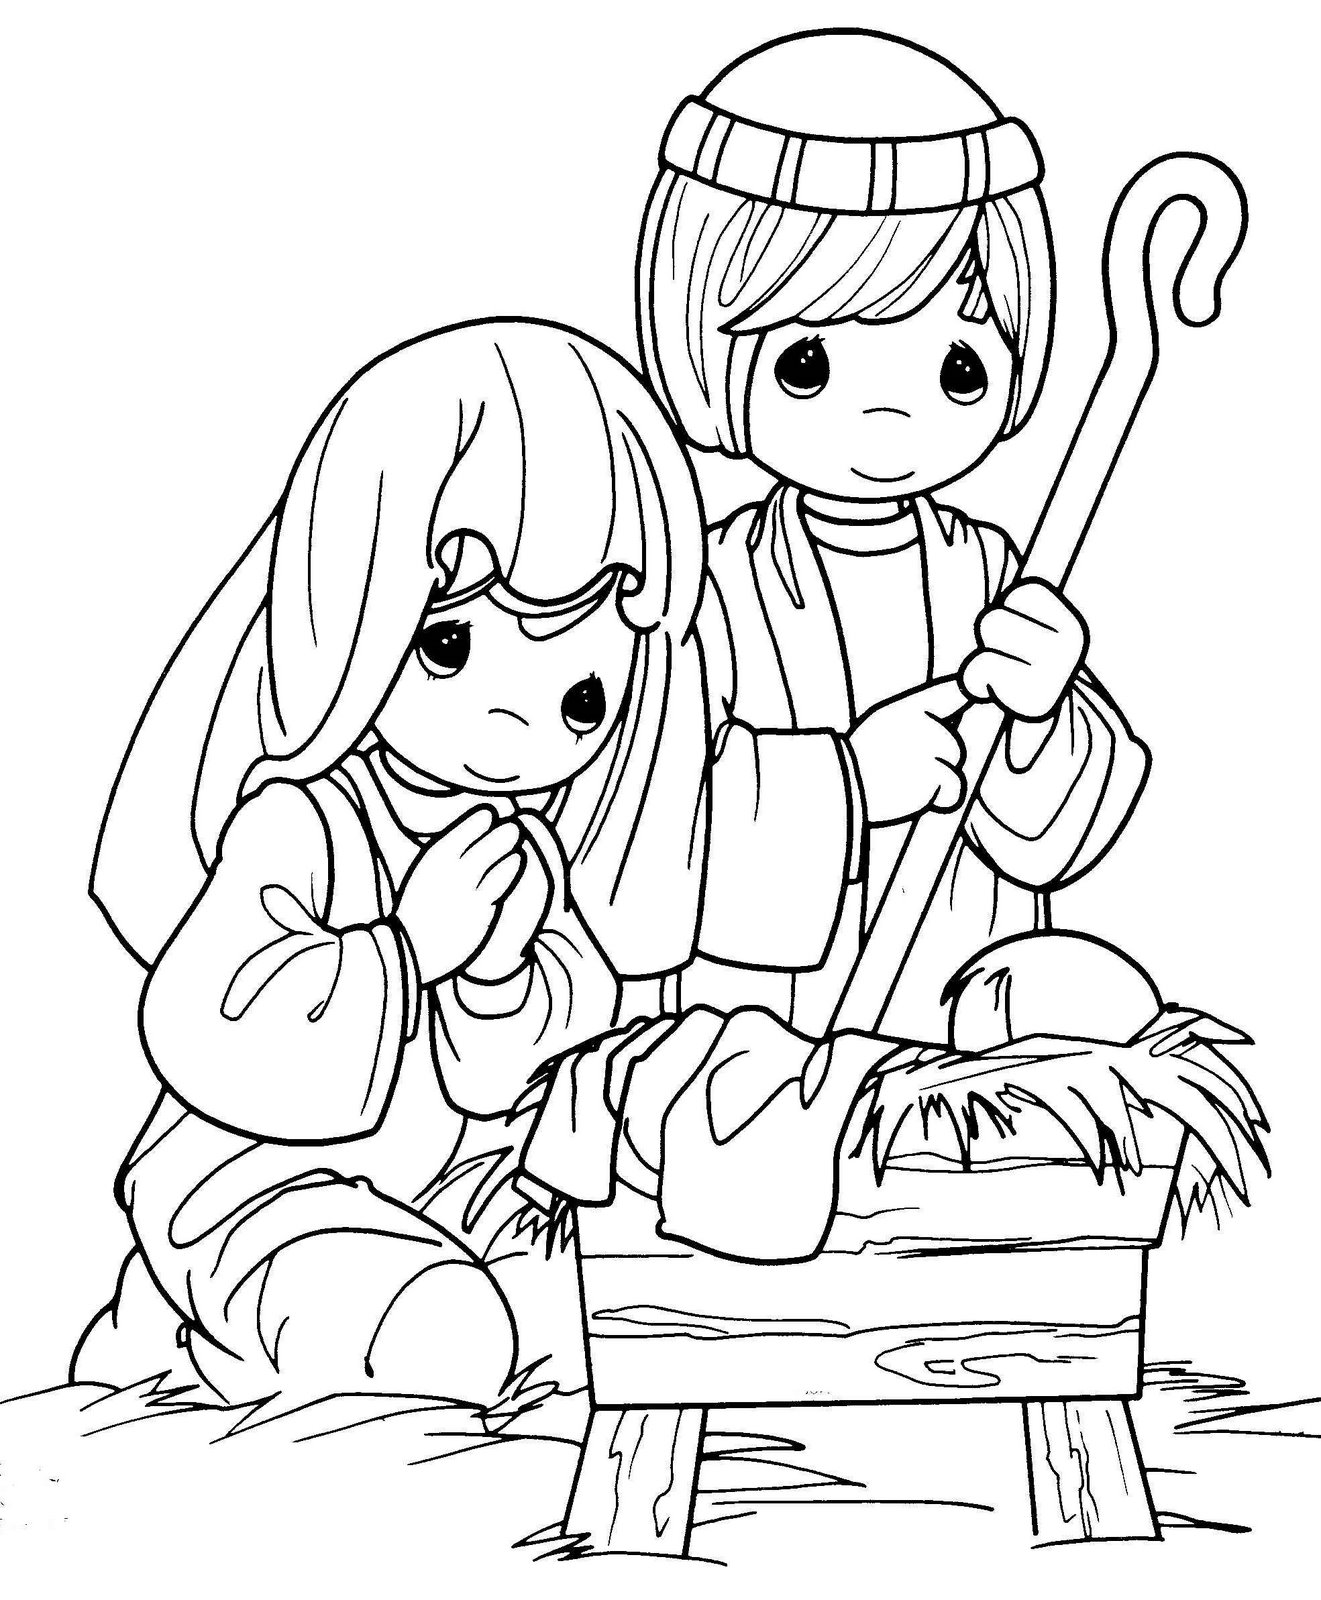 jesus coloring page baby jesus coloring pages best coloring pages for kids coloring jesus page